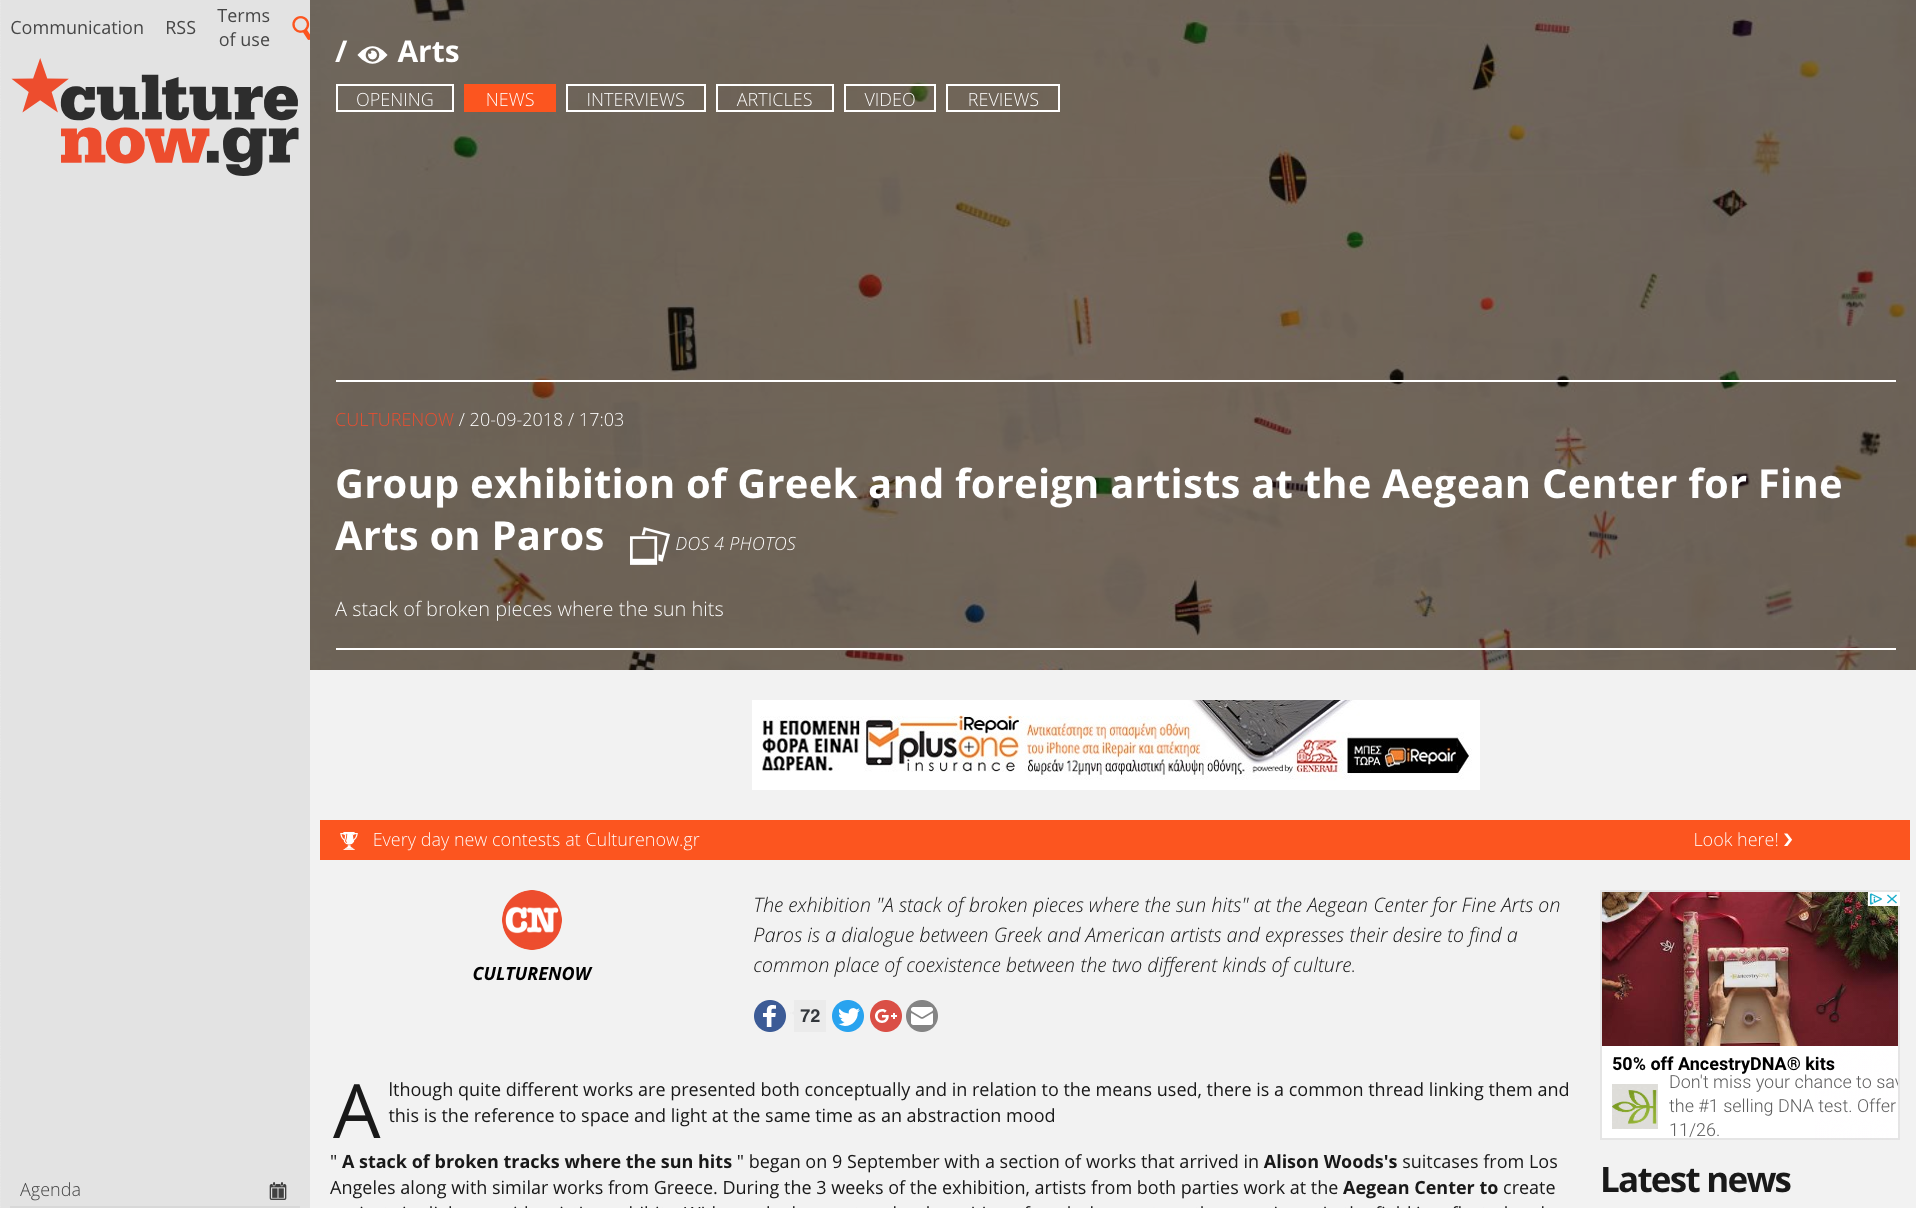 Durden And Ray in Culturenow in Greece! - The exhibition